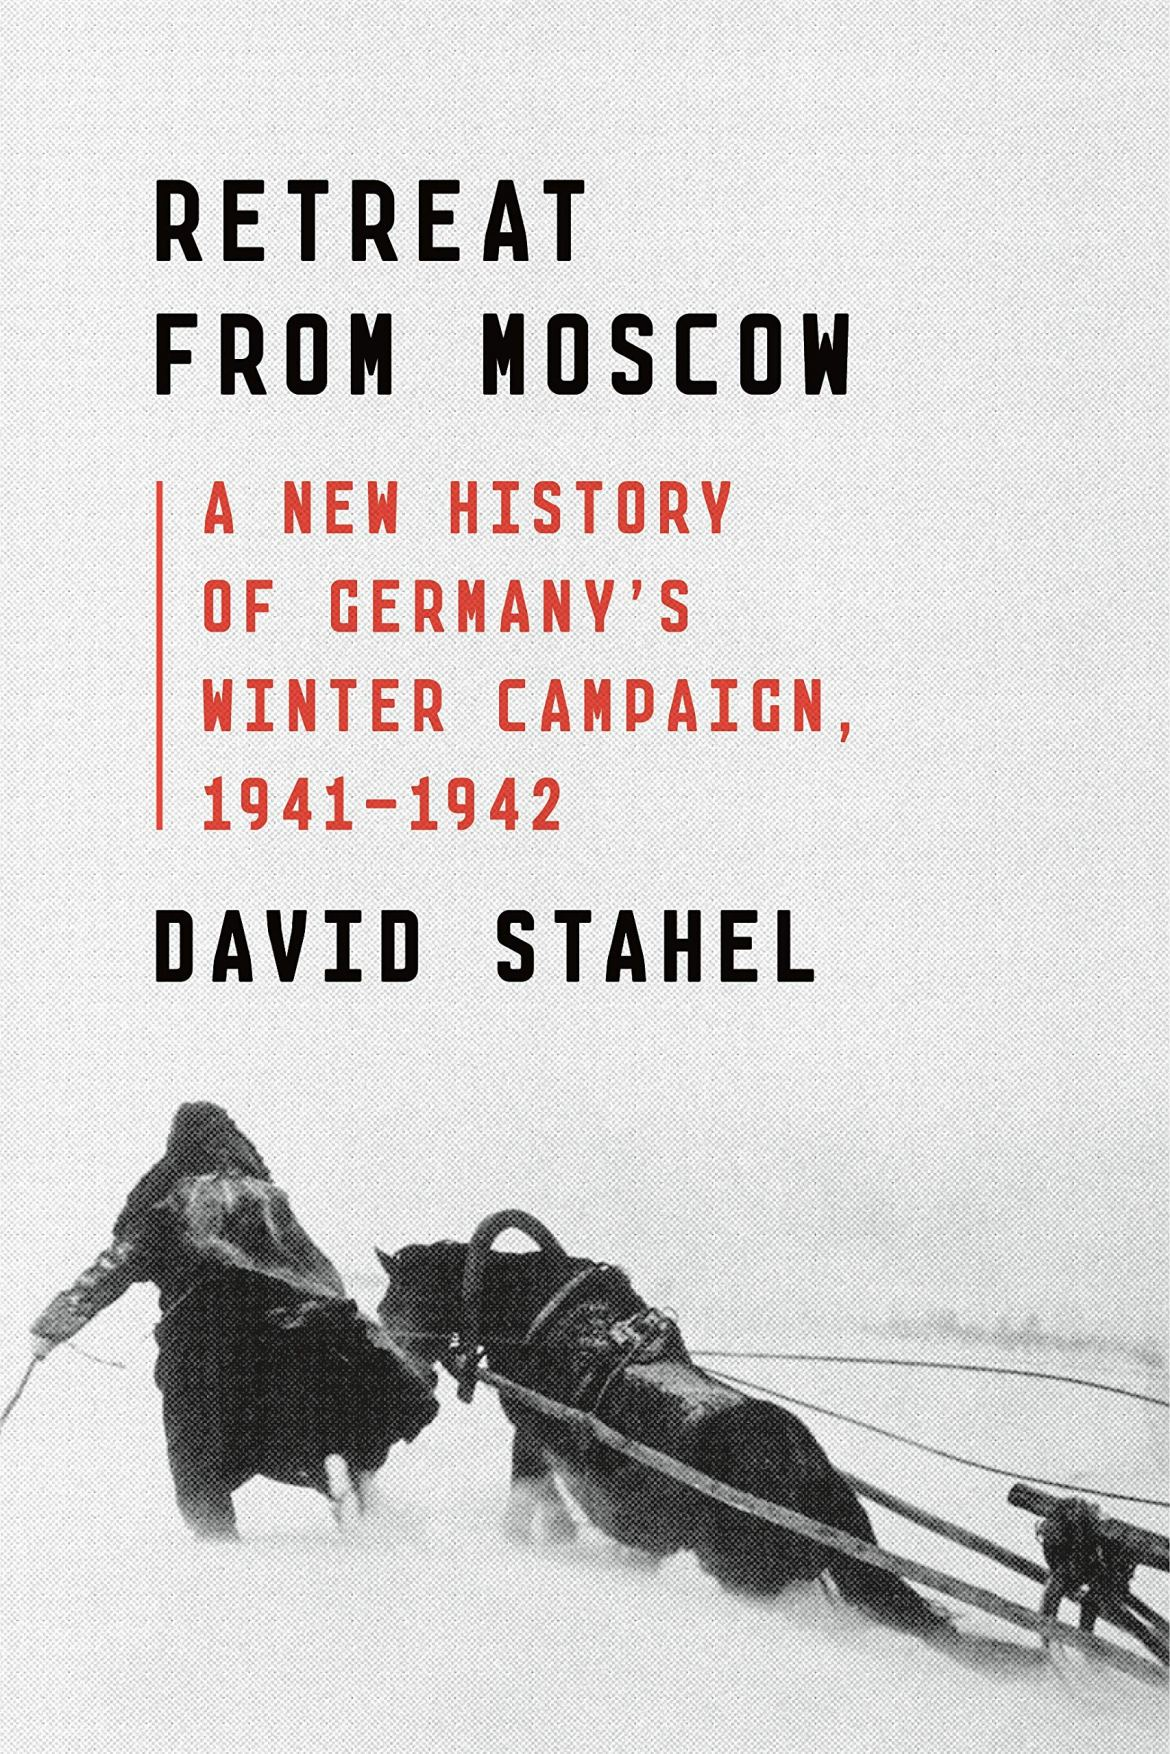 Image result for RETREAT FROM MOSCOW – DAVID STAHEL